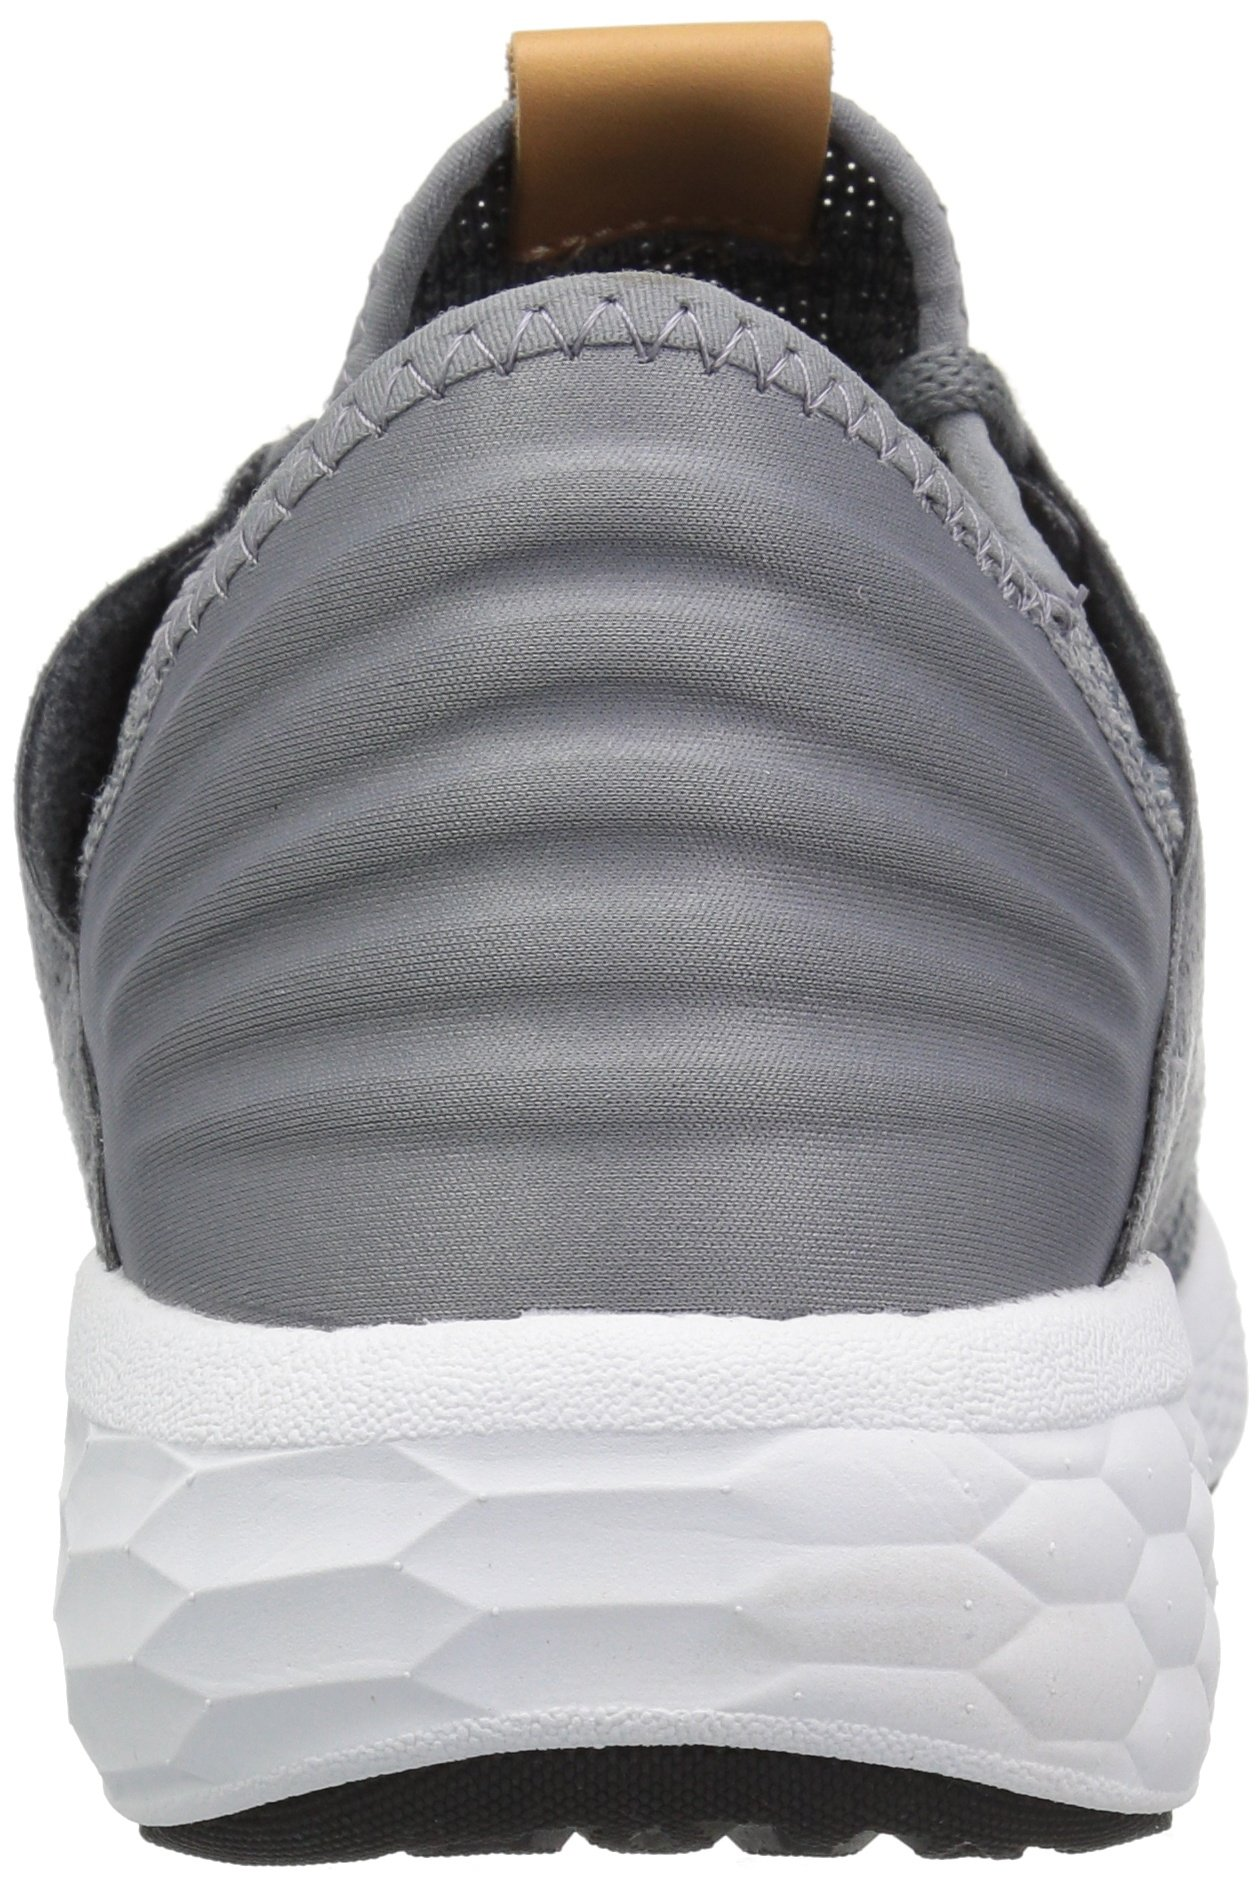 New Balance Men's Cruz V2 Fresh Foam Running Shoe, Gunmetal / Thunder, 7 D US by New Balance (Image #2)